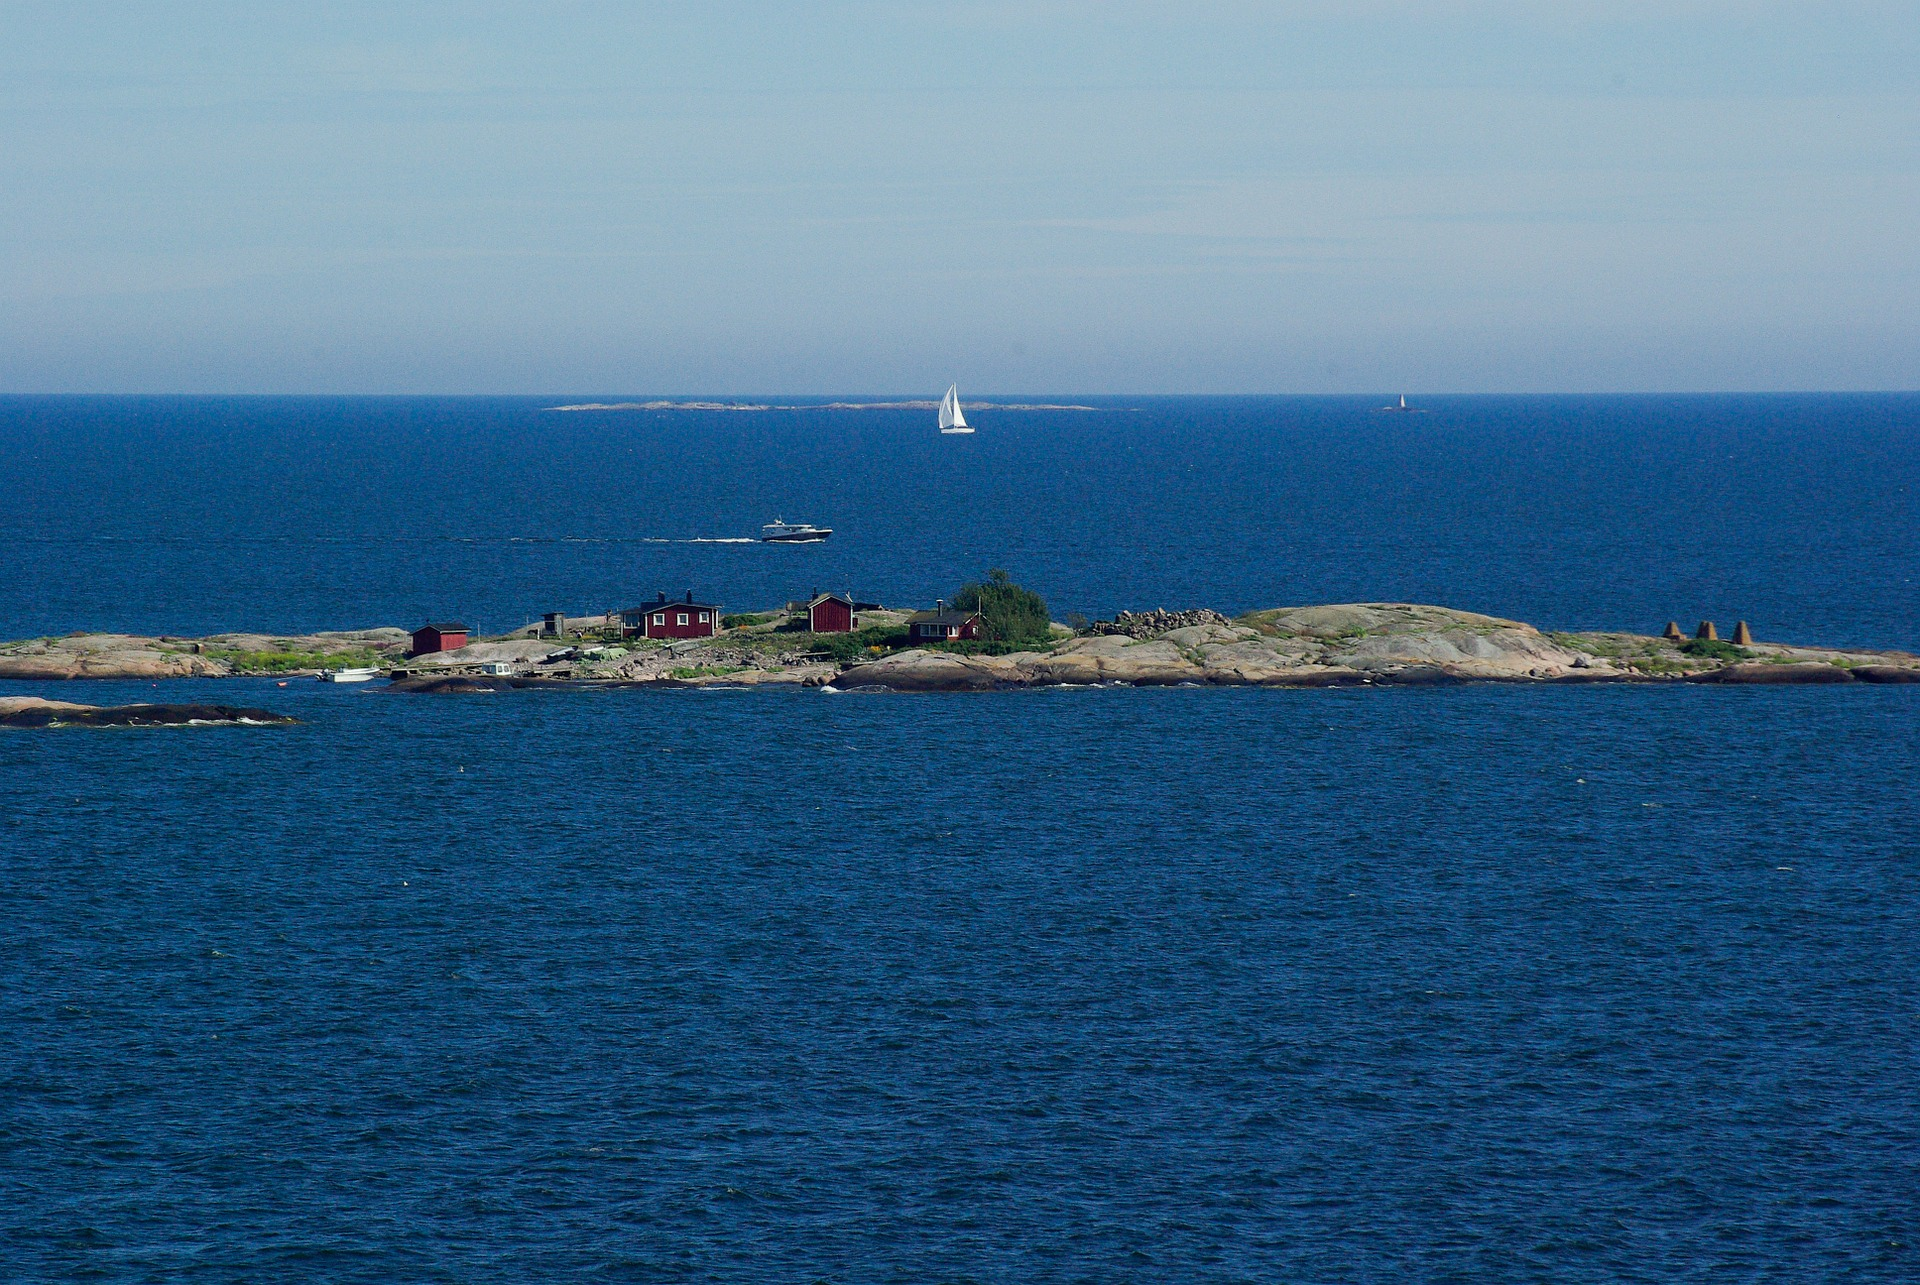 Island in the Baltic Sea, Finland